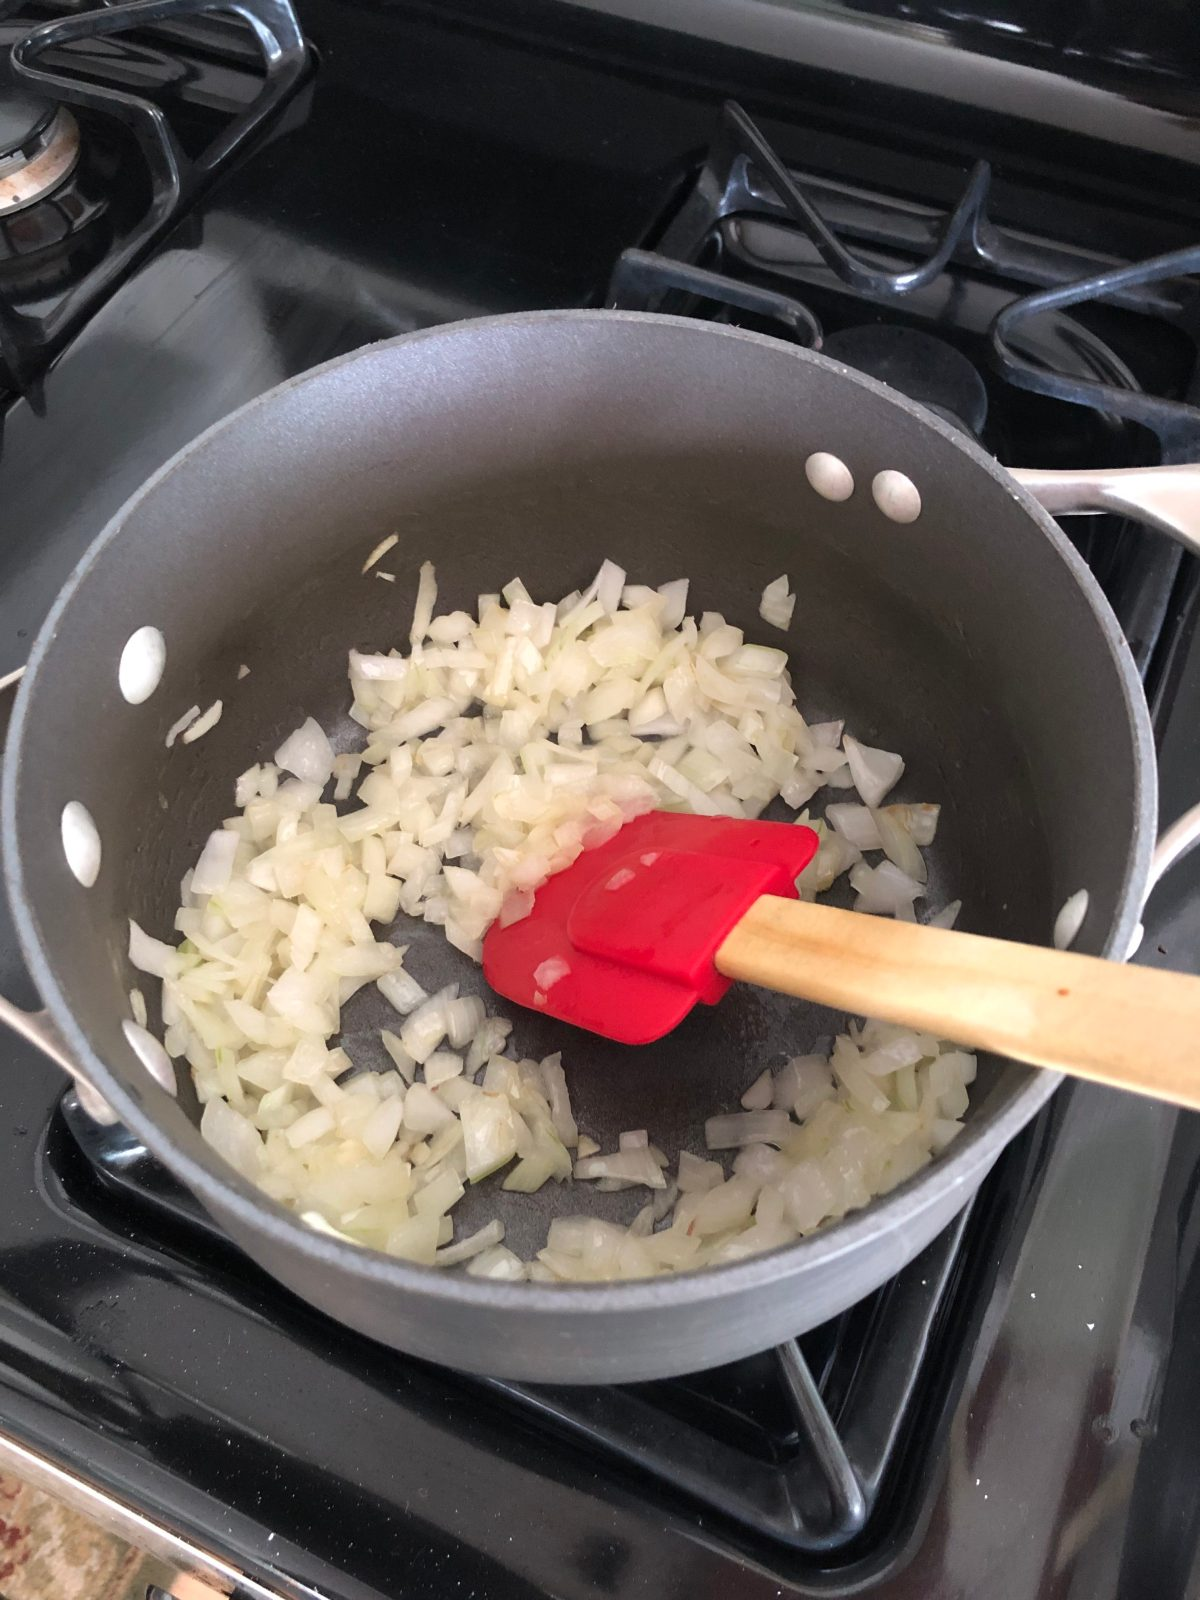 Chopped onions cooking in a sauce pan on the stove top.